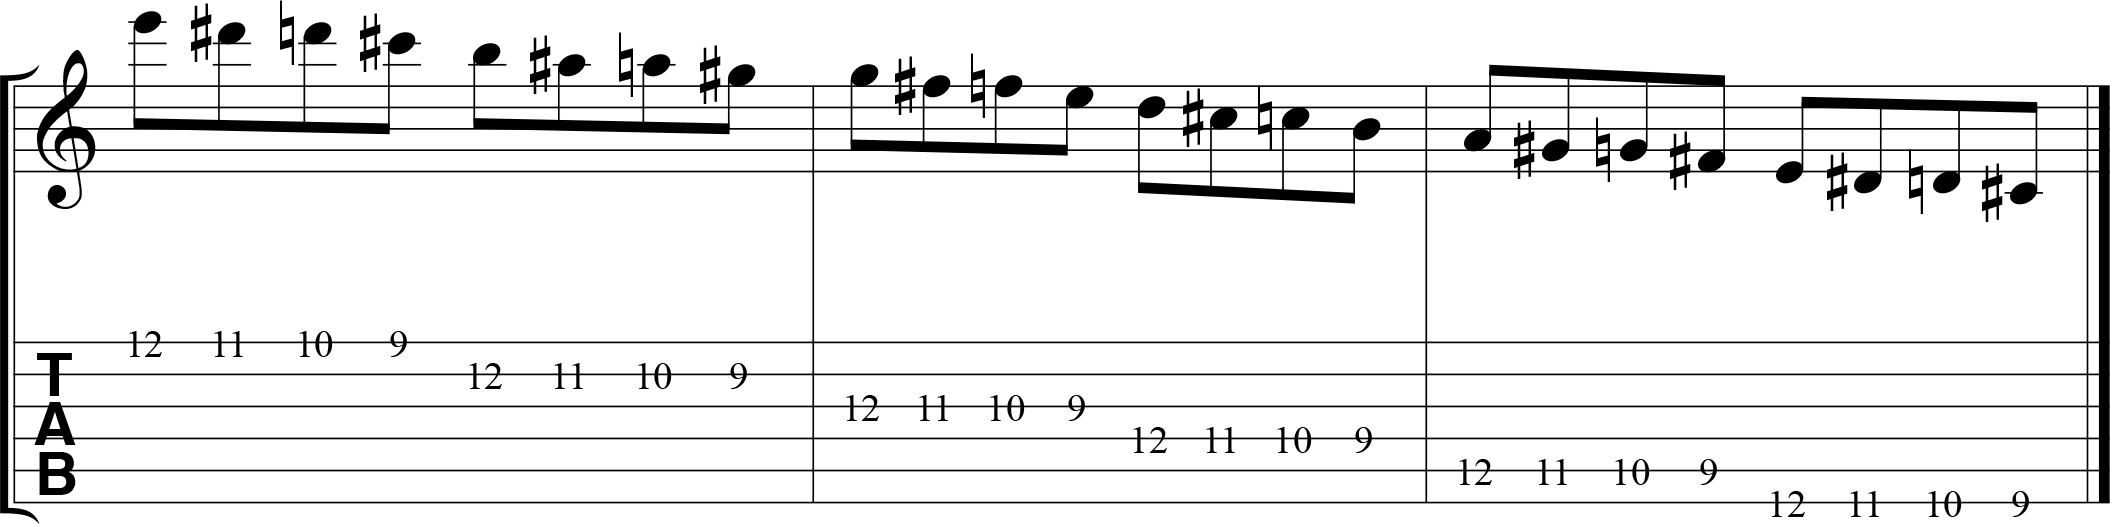 Chromatic alternate picking exercise for guitar, 1234, descending.